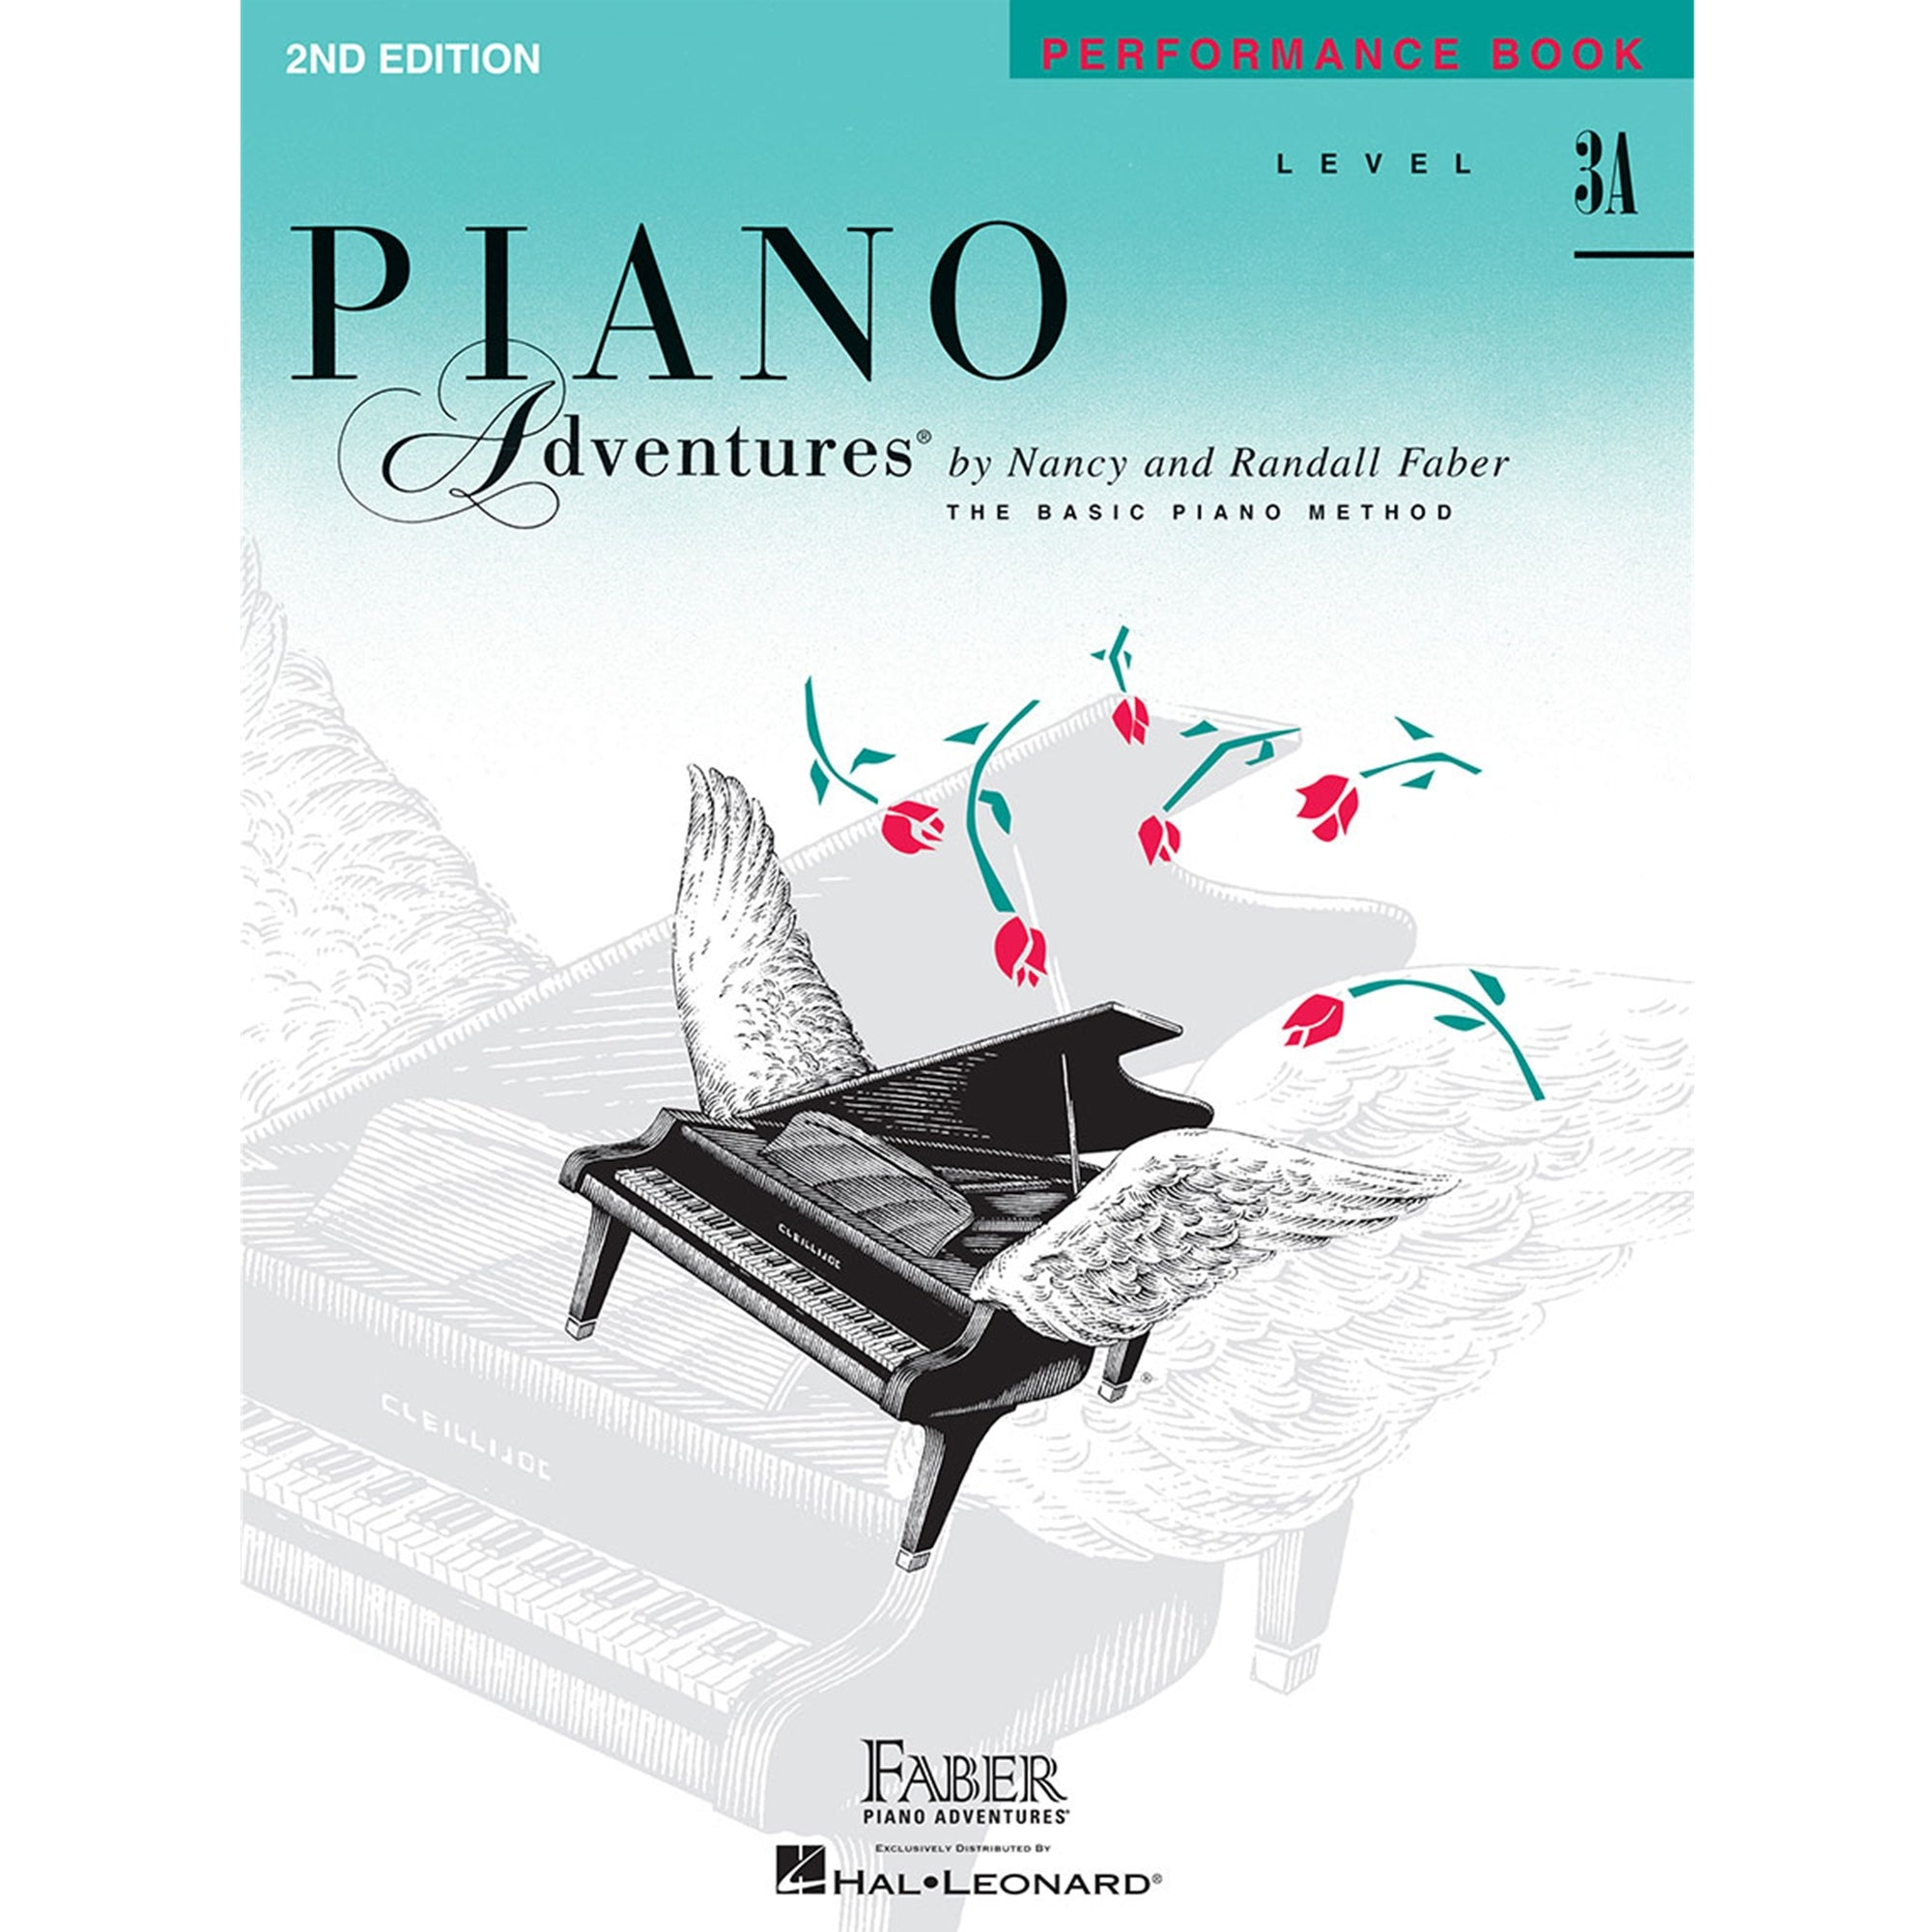 FJH PUBLISHER 420182 Piano Adventures Performance Level 3A